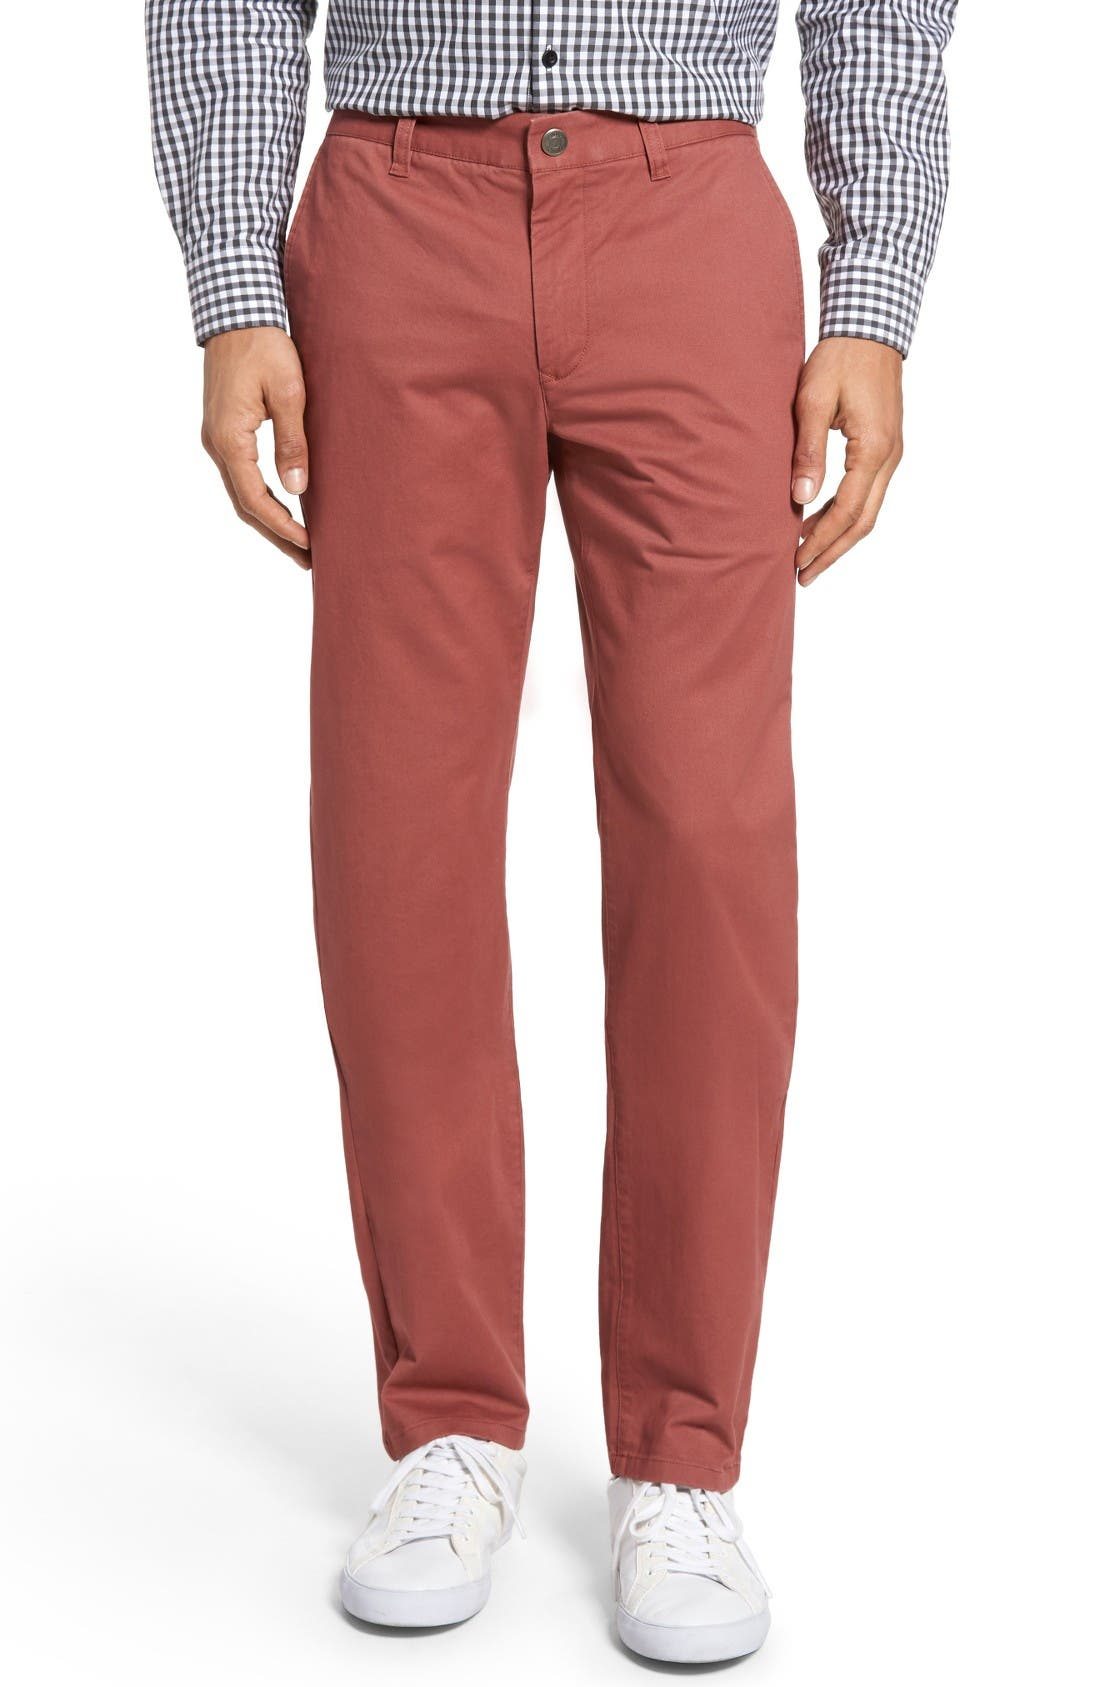 Bonobos Slim Fit Stretch Cotton Chinos